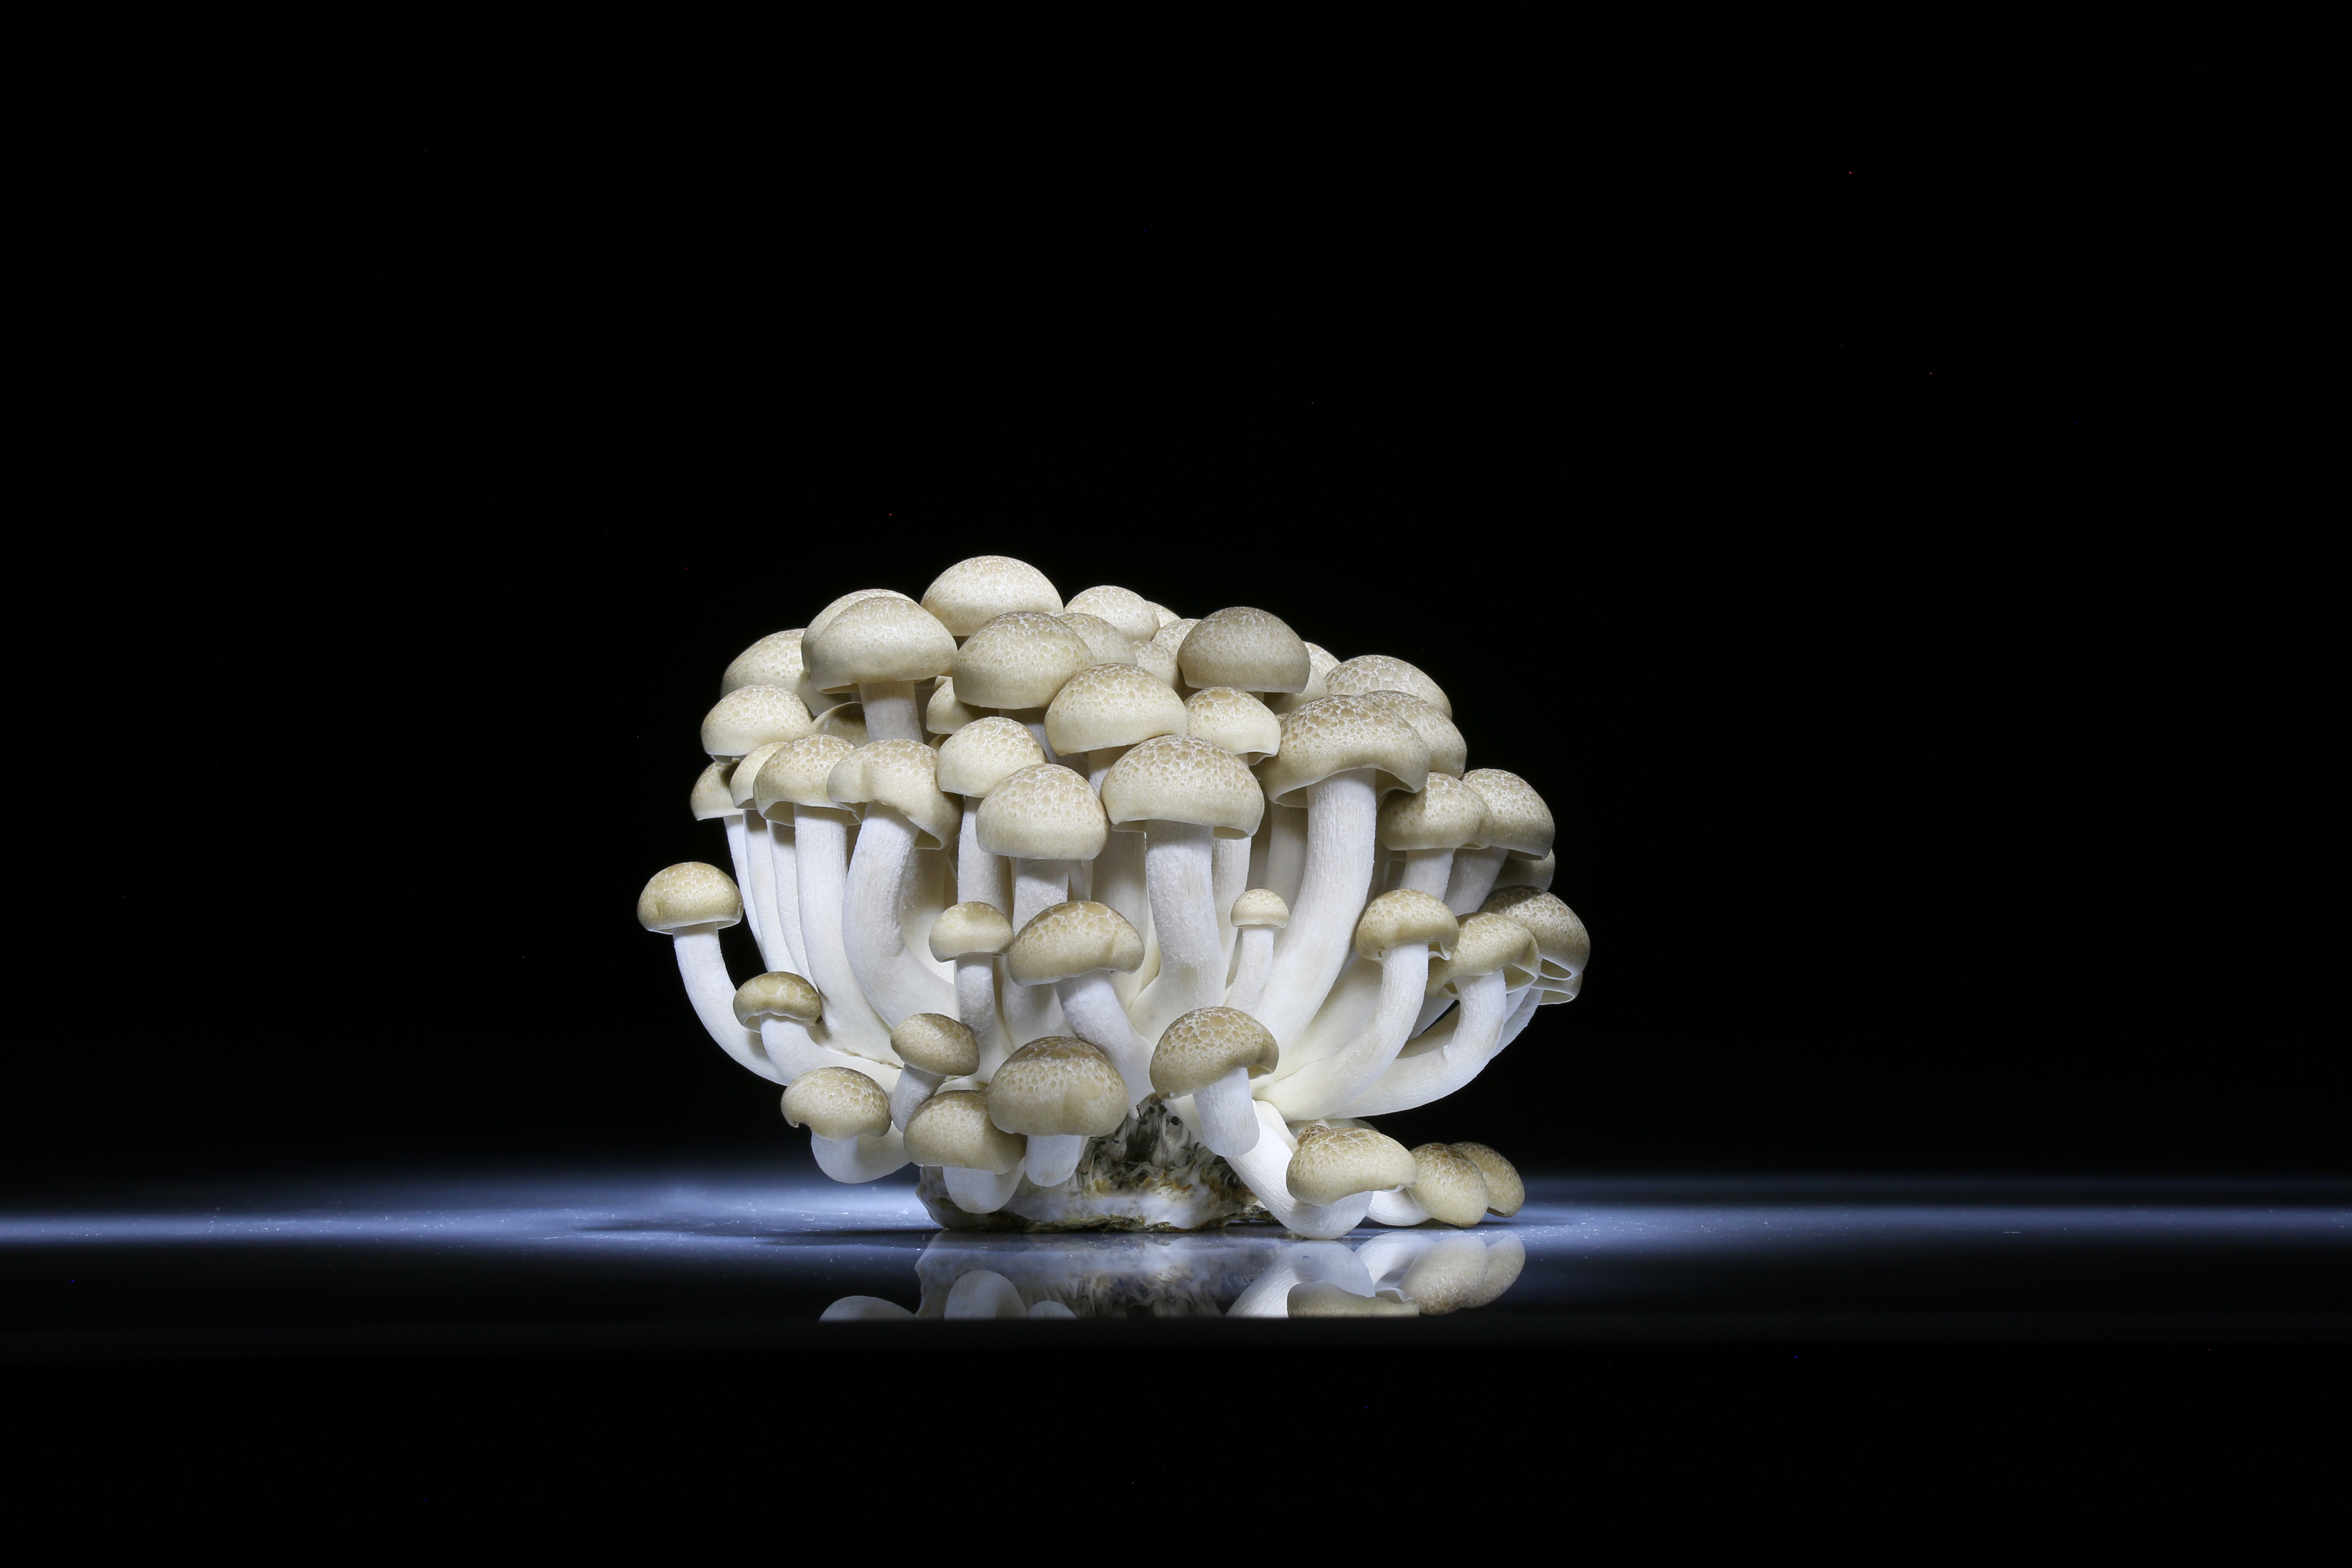 mushrooms, photo, amazing